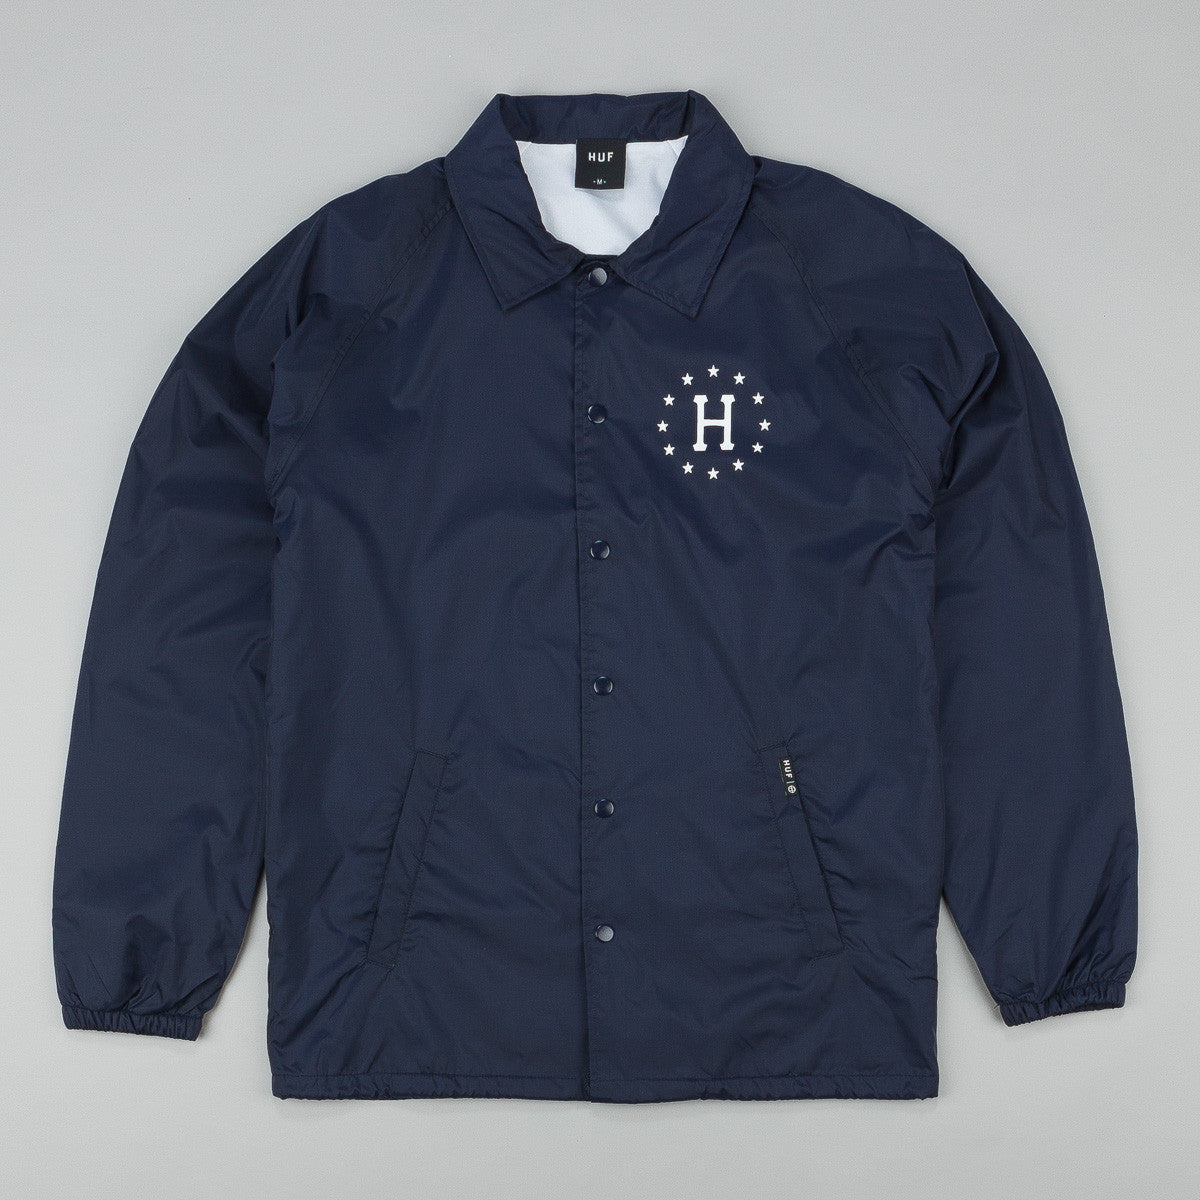 Huf USA Coaches Jacket